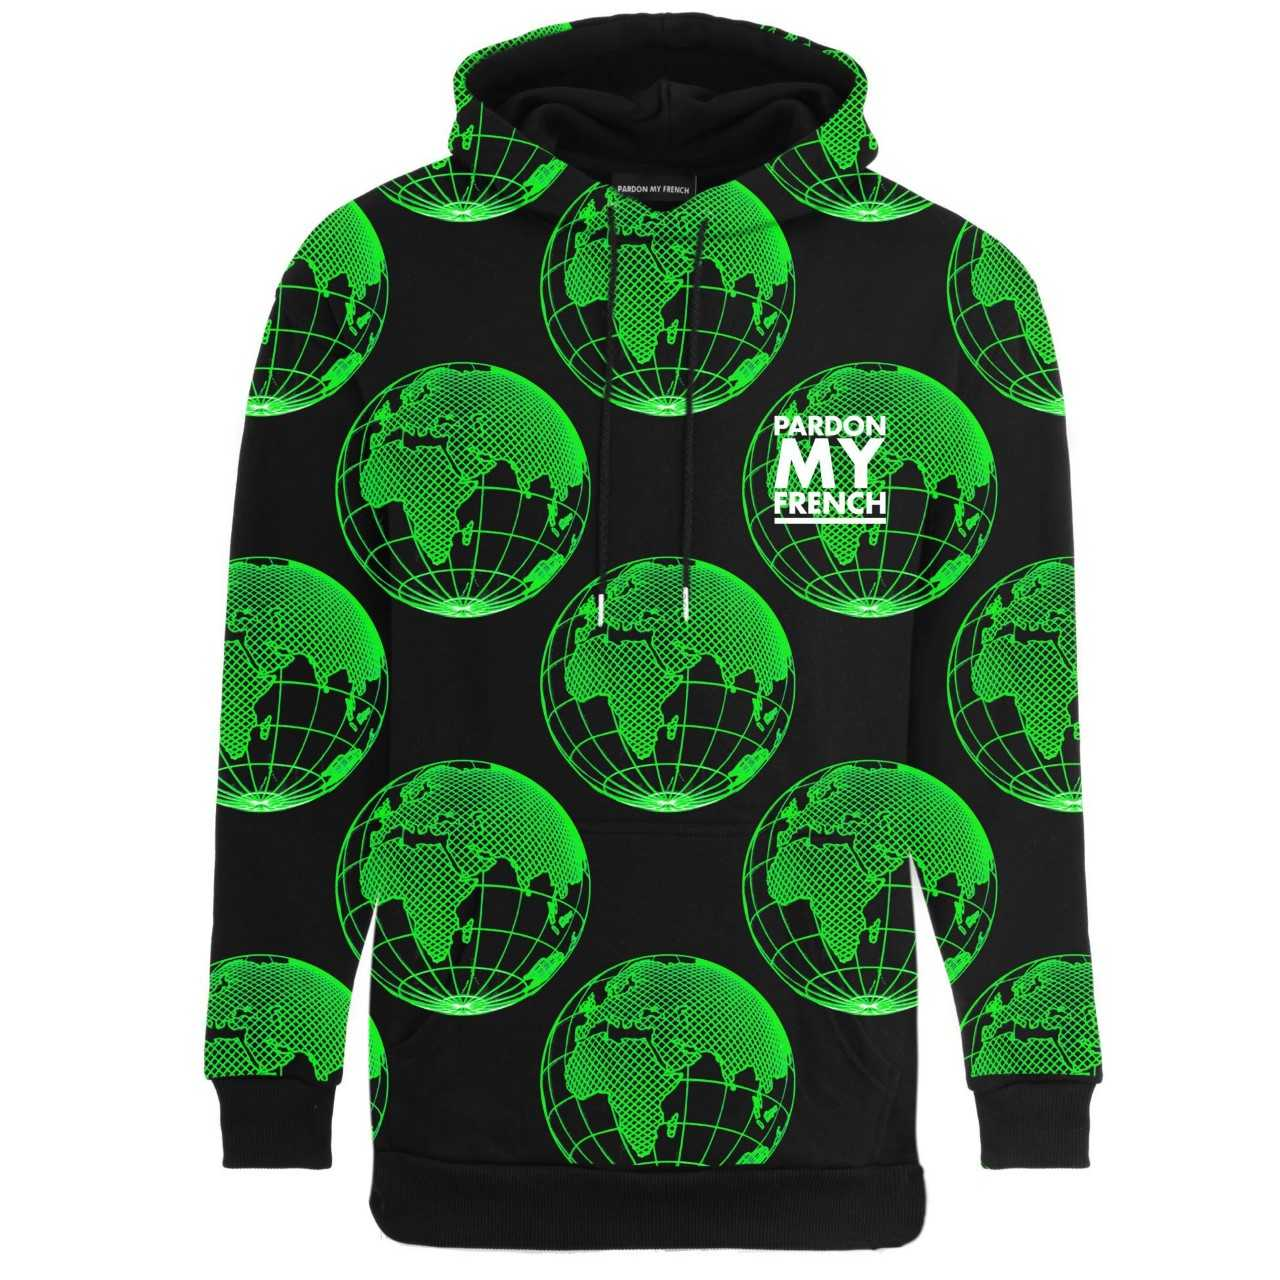 PARDON MY FRENCH WORLD PLANETS HOODIE